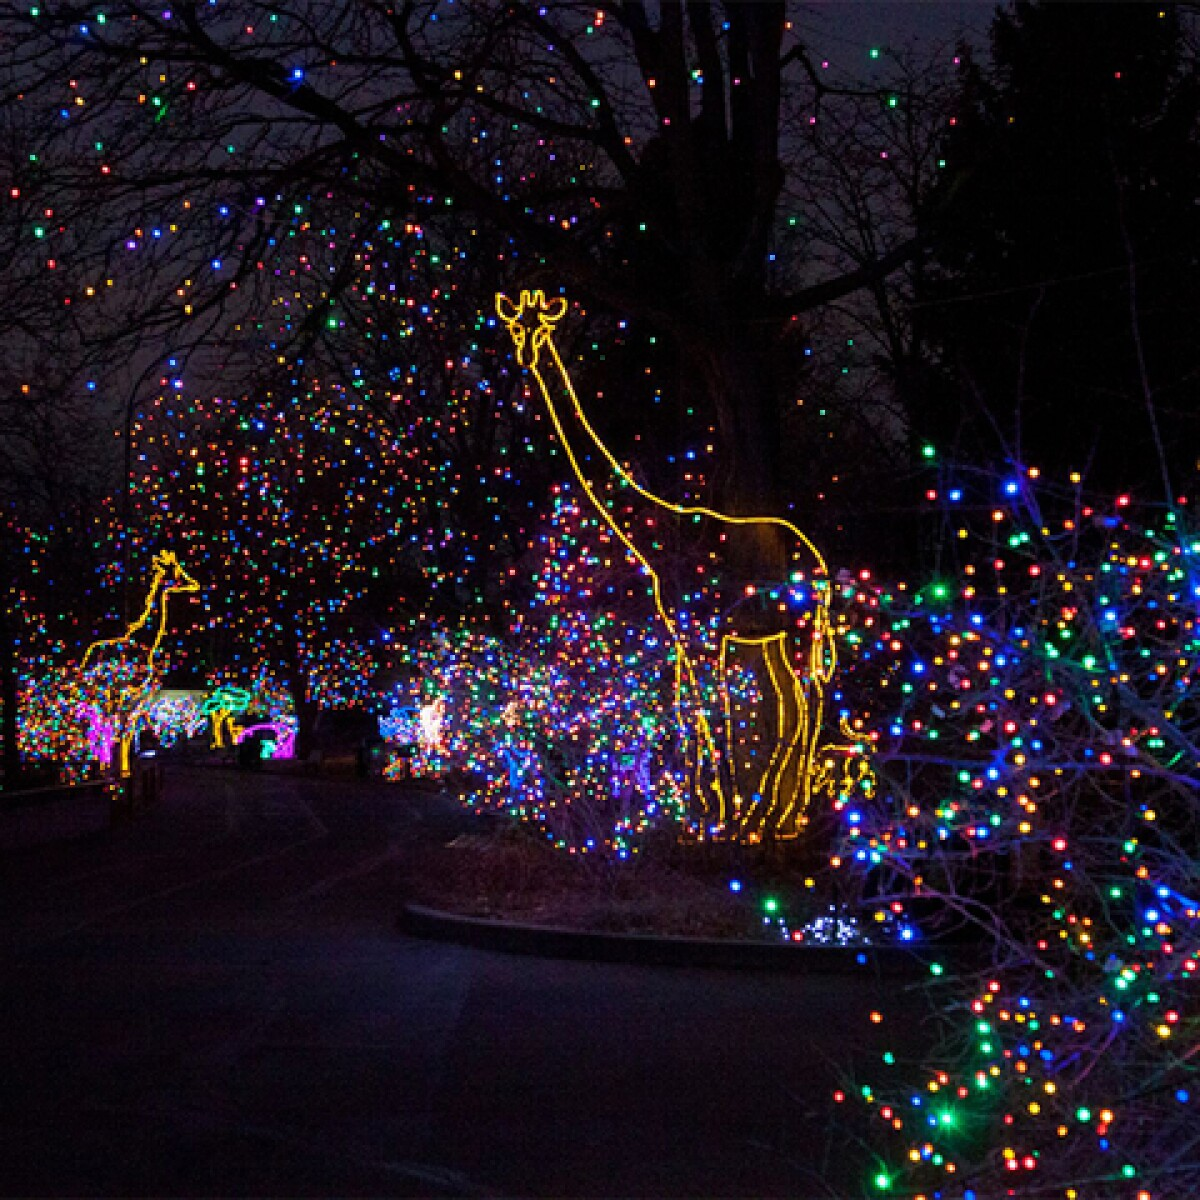 Denver Zoo's 'Zoo Lights' To Sparkle With Holiday Fun This